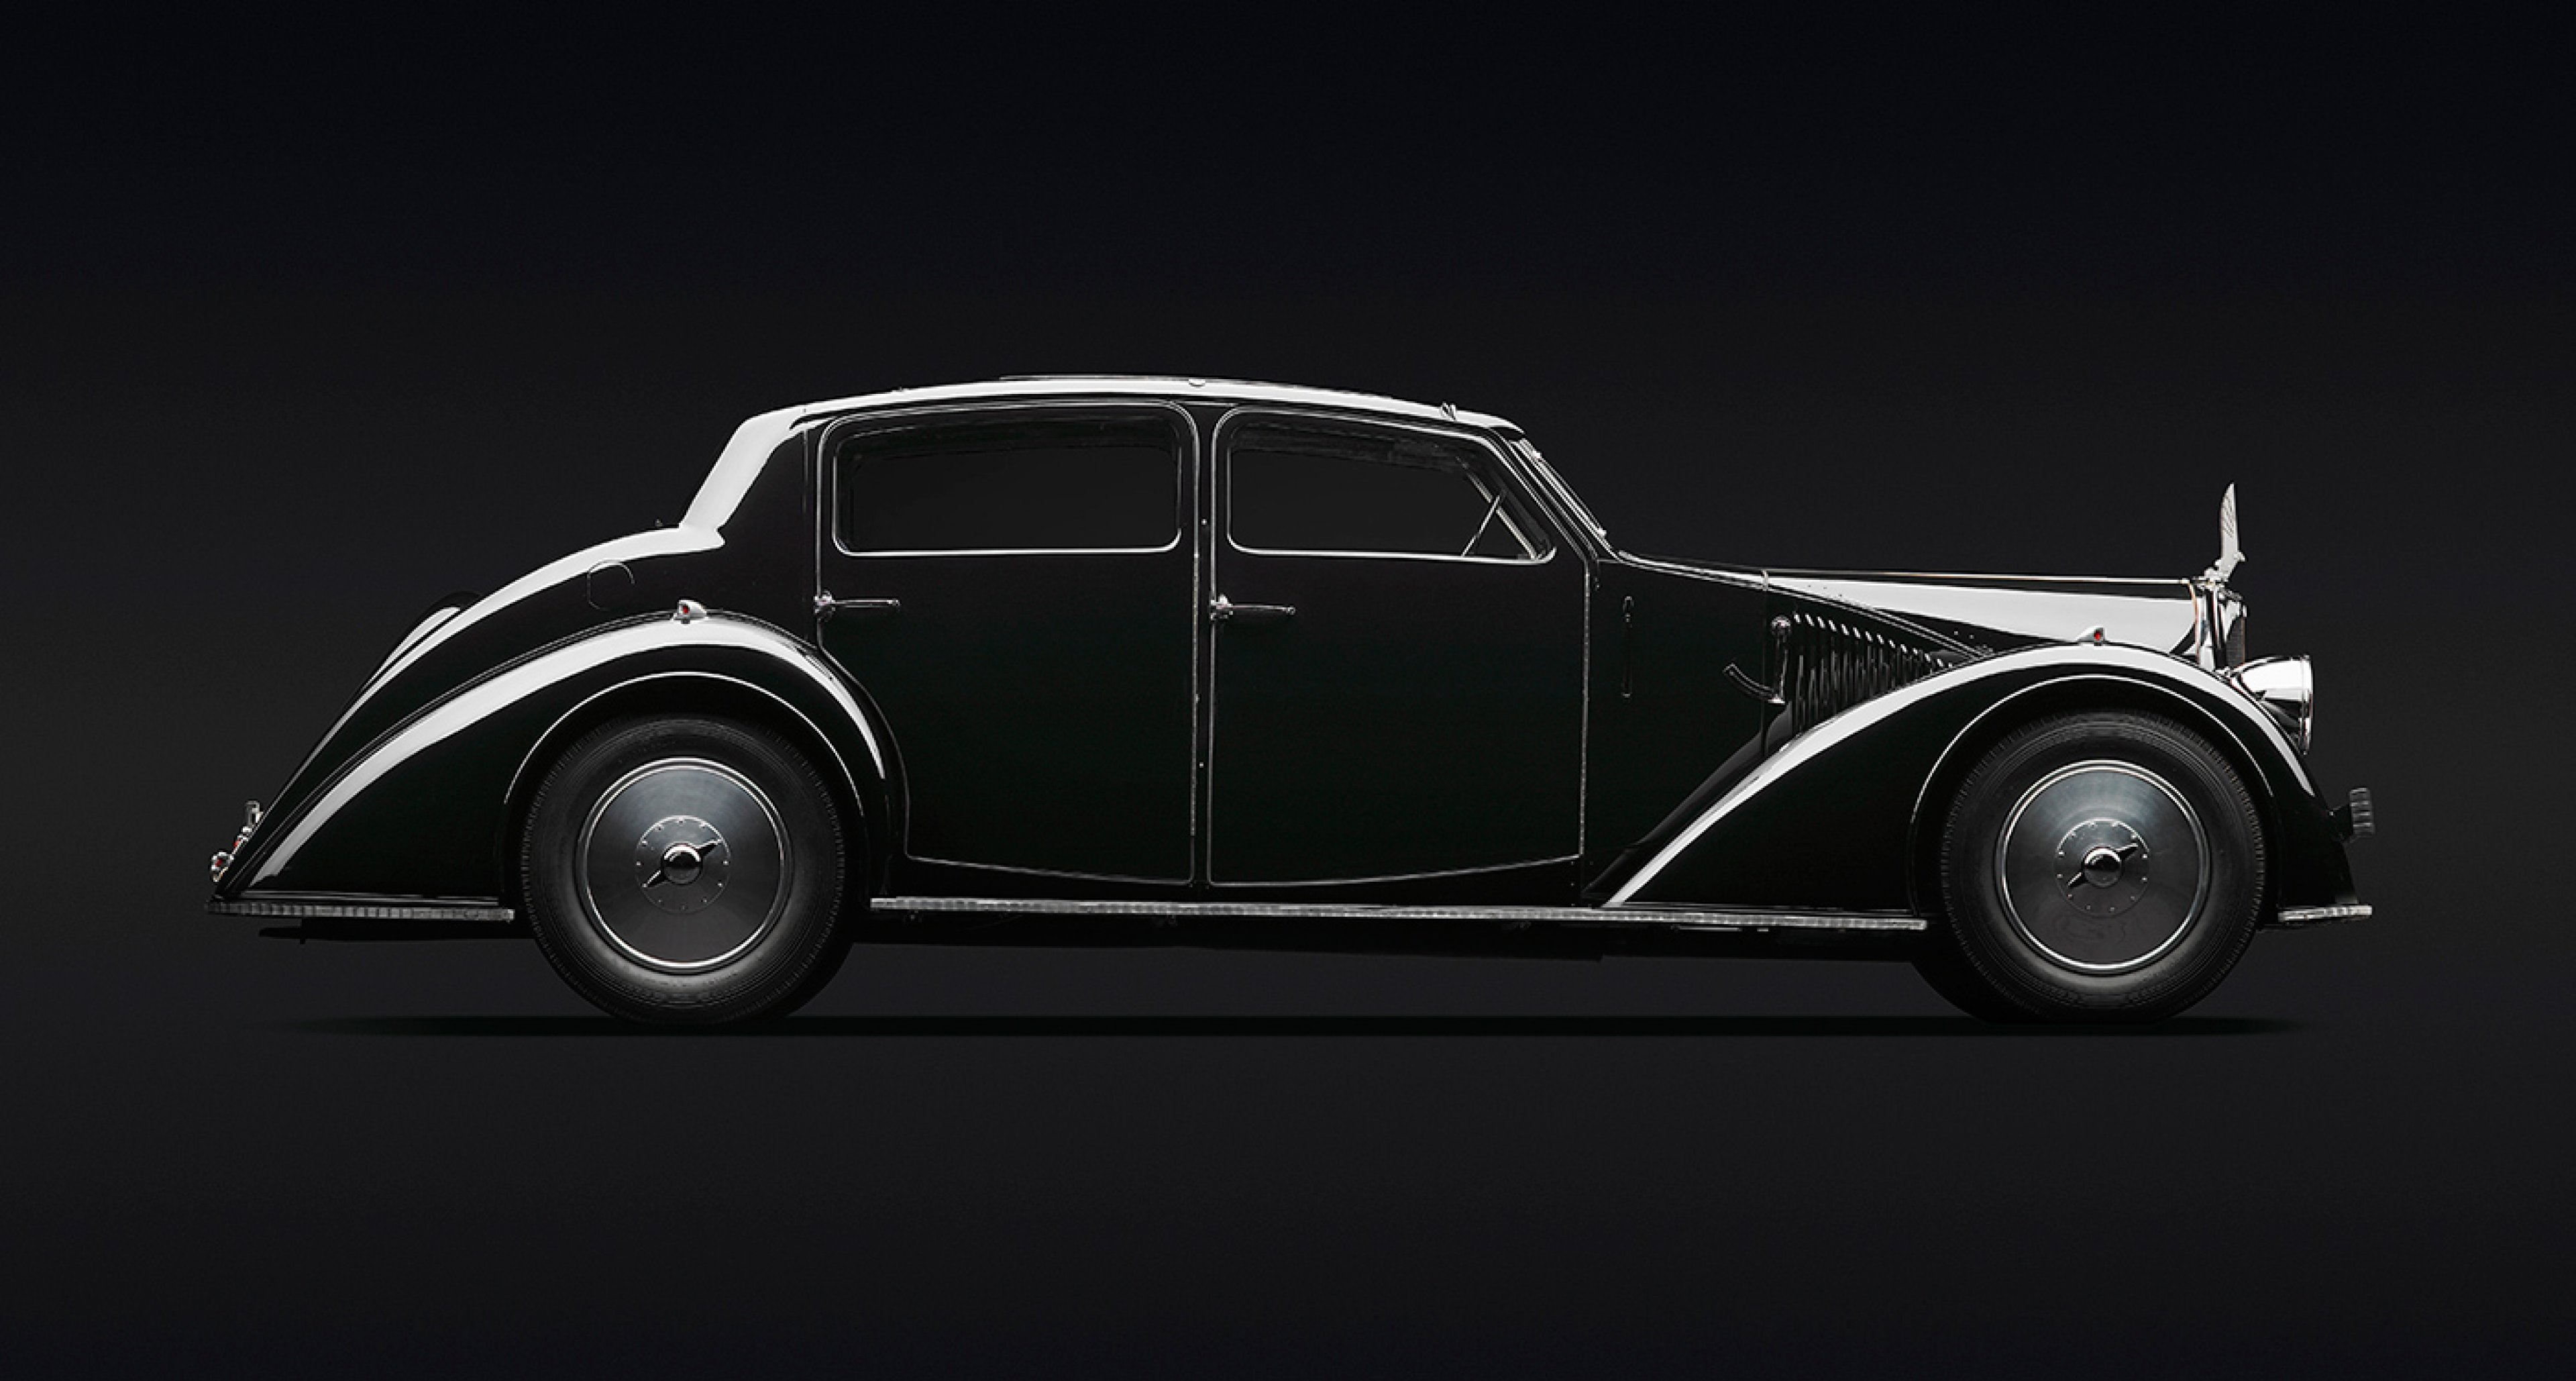 Voisin C28 Clairière, 1936, Collection of Peter and Merle Mullin;  Photo © 2016 Michael Furman